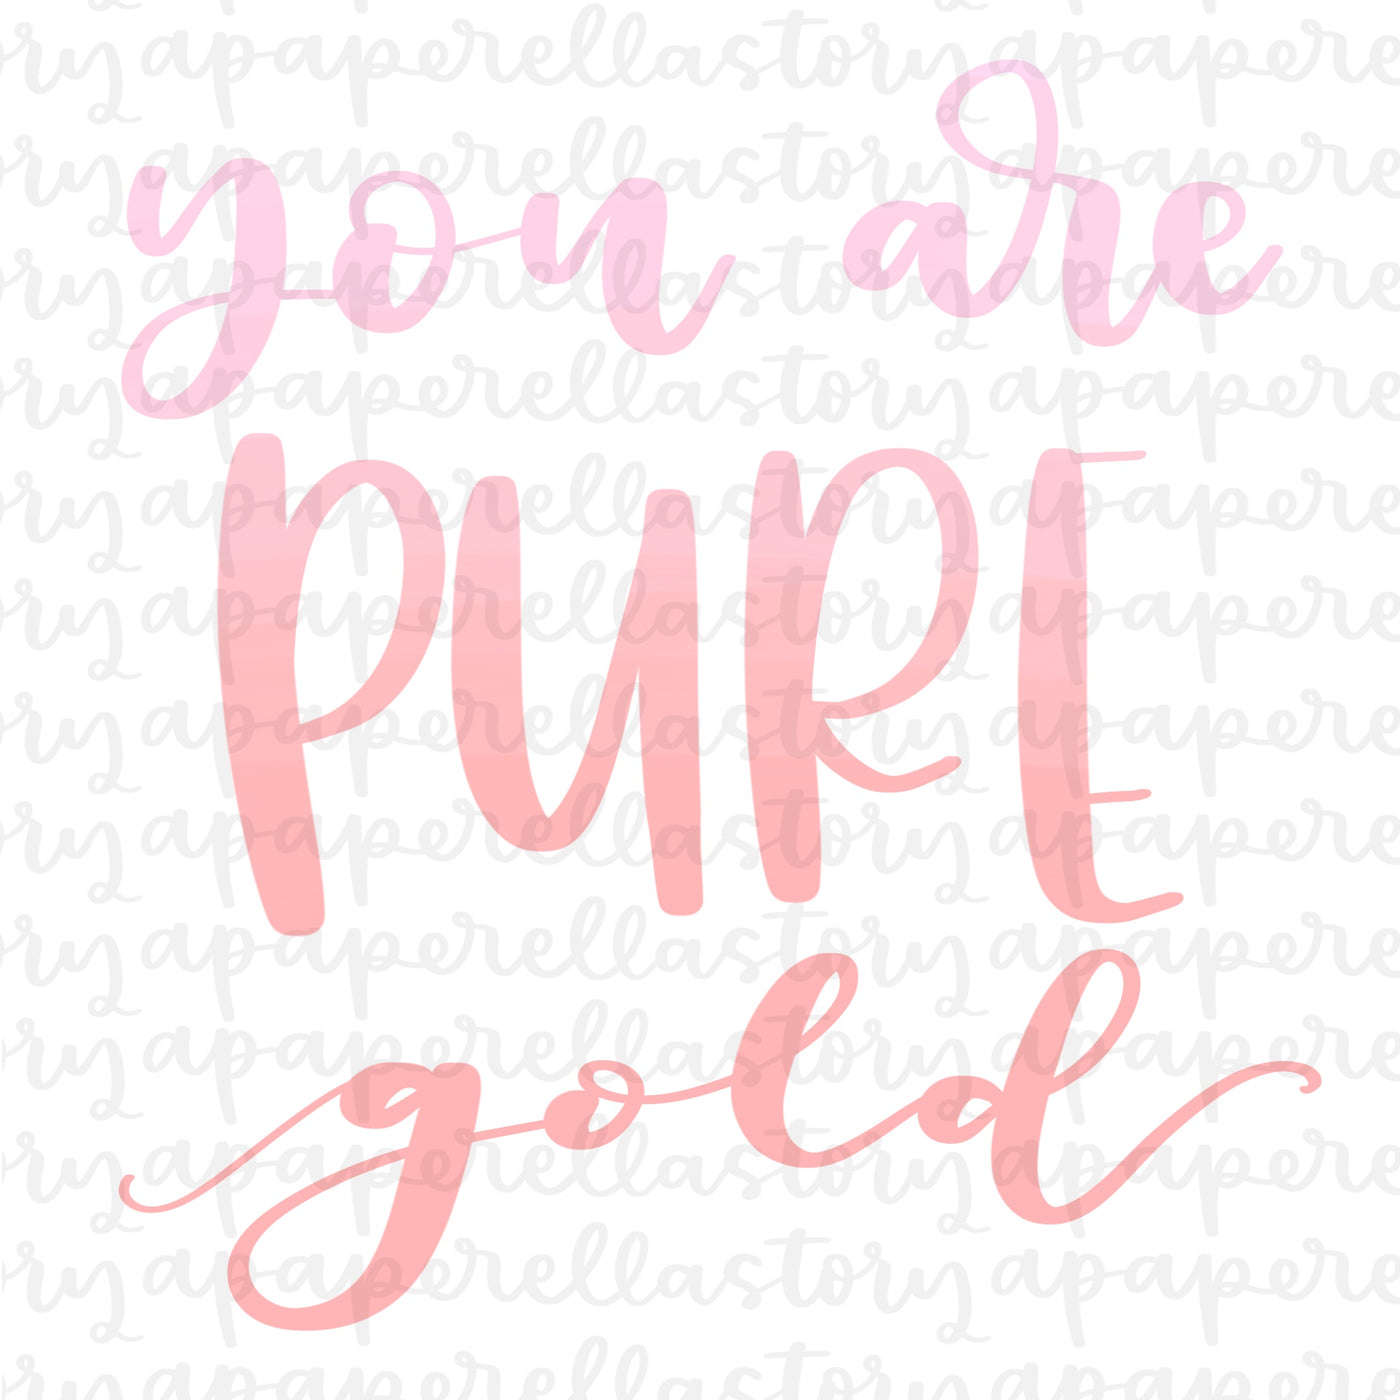 You are Pure Gold (Ombre Lettering) - Digital File